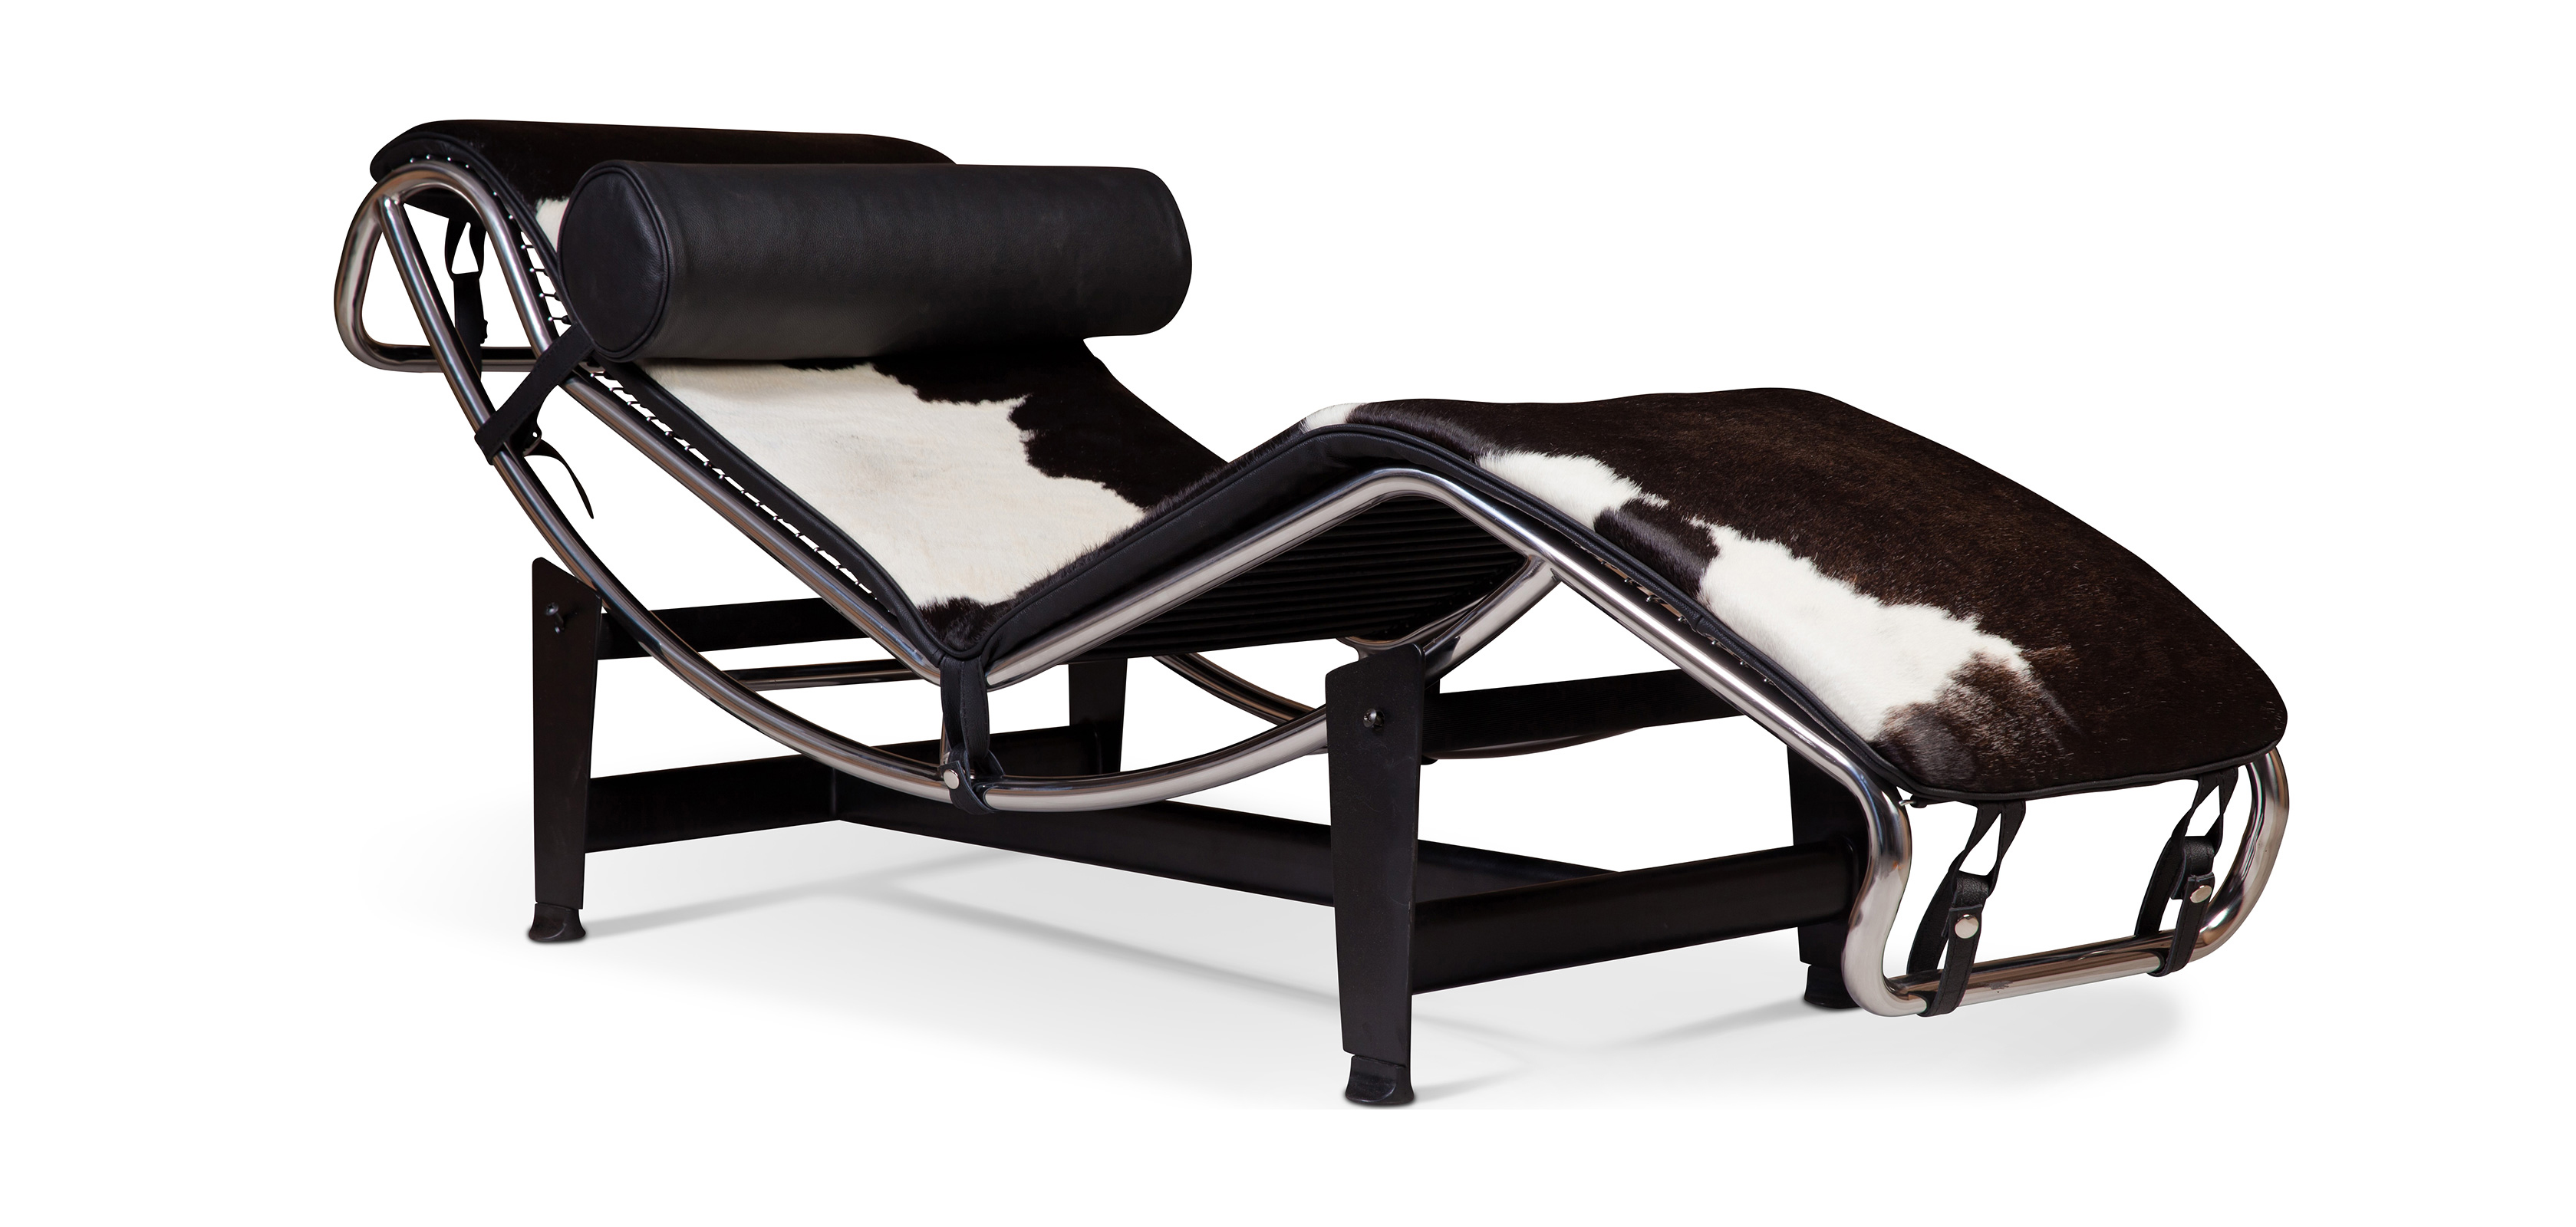 chaise longue kart4 pony pas cher. Black Bedroom Furniture Sets. Home Design Ideas